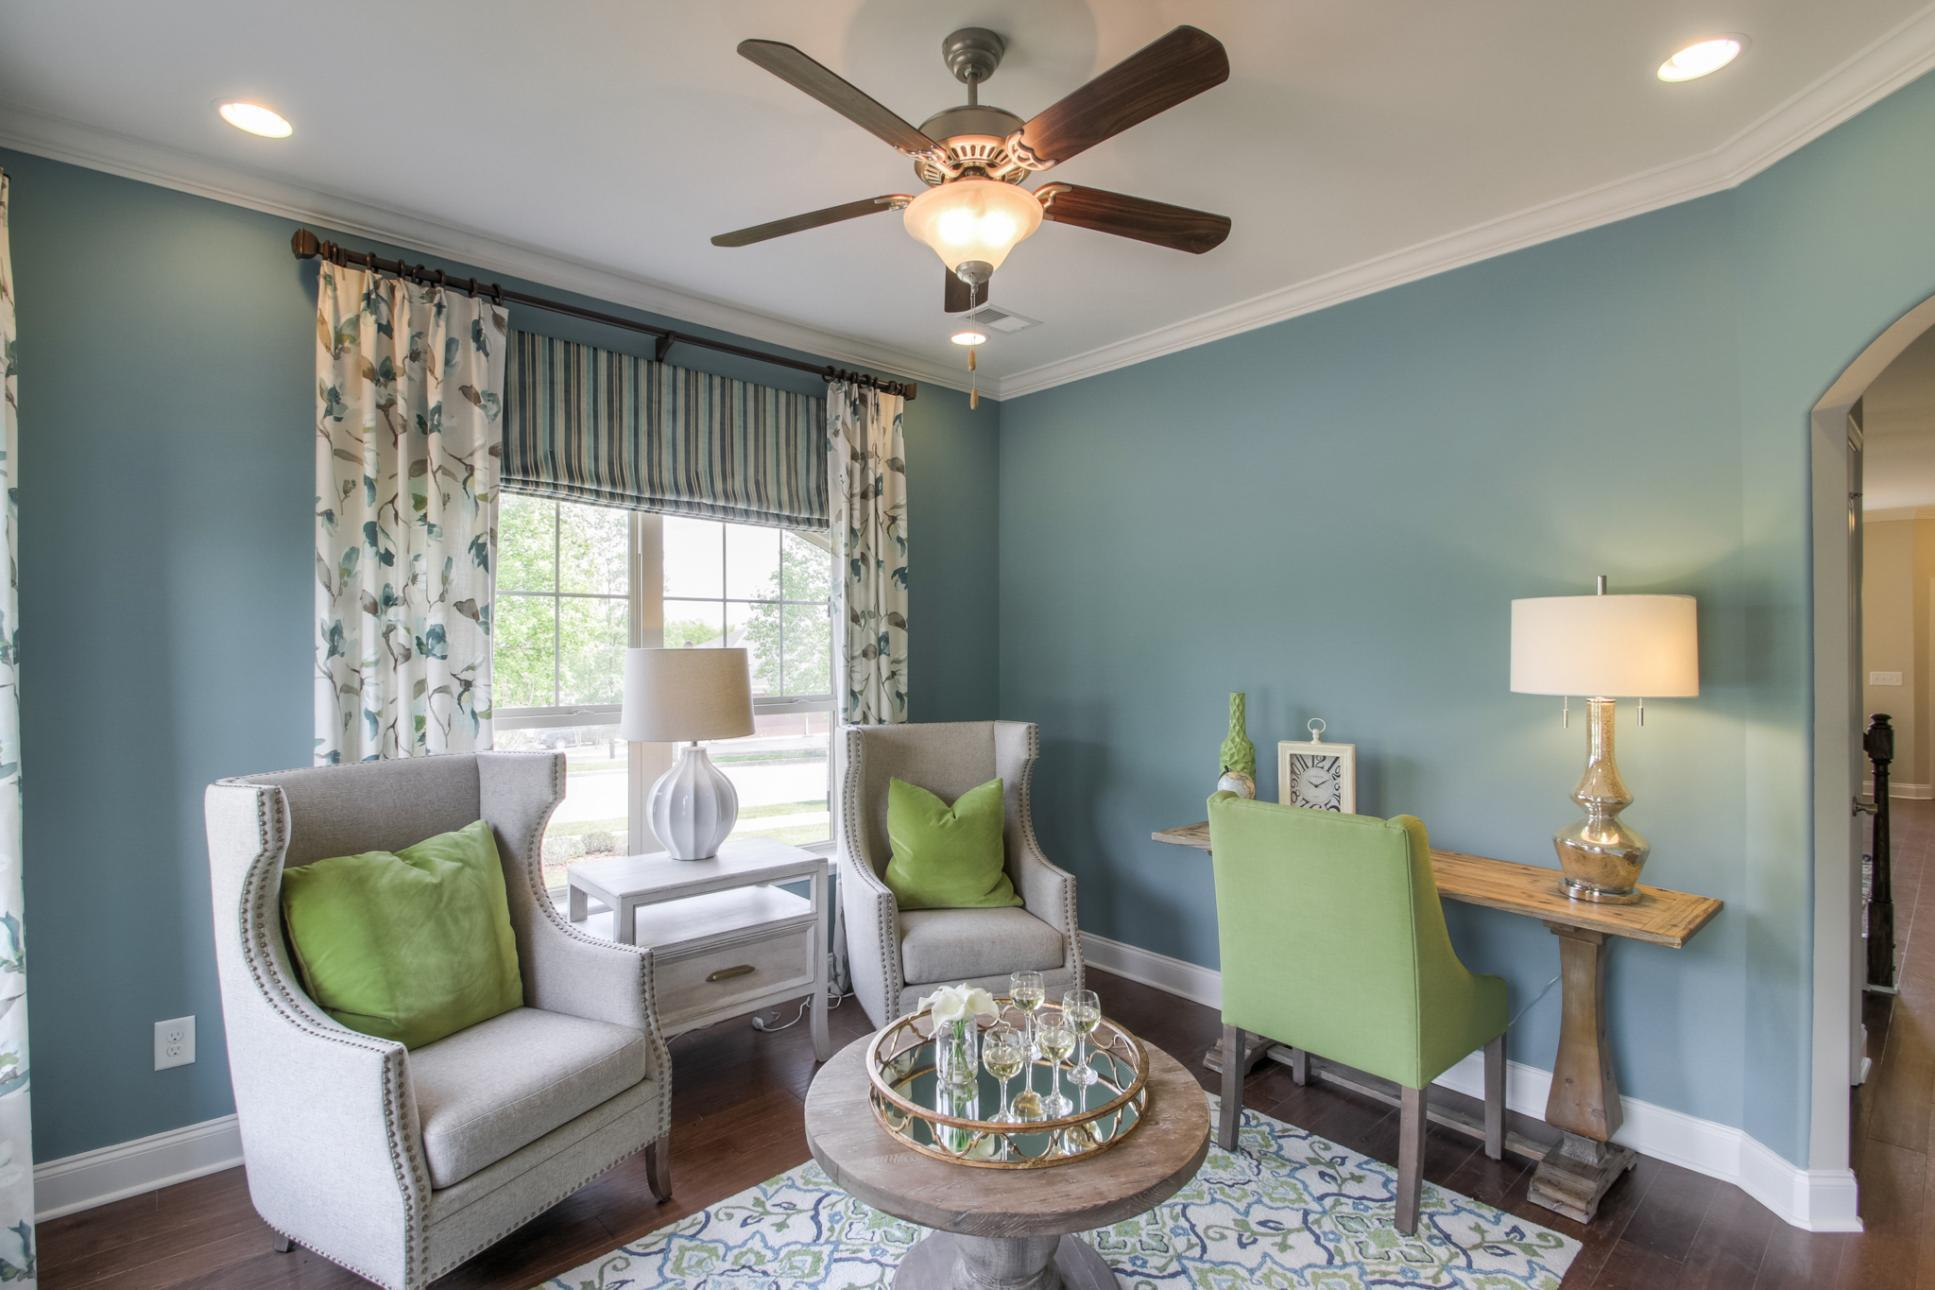 Living Area featured in The Everleigh Courtyard Cottage By Goodall Homes in Nashville, TN